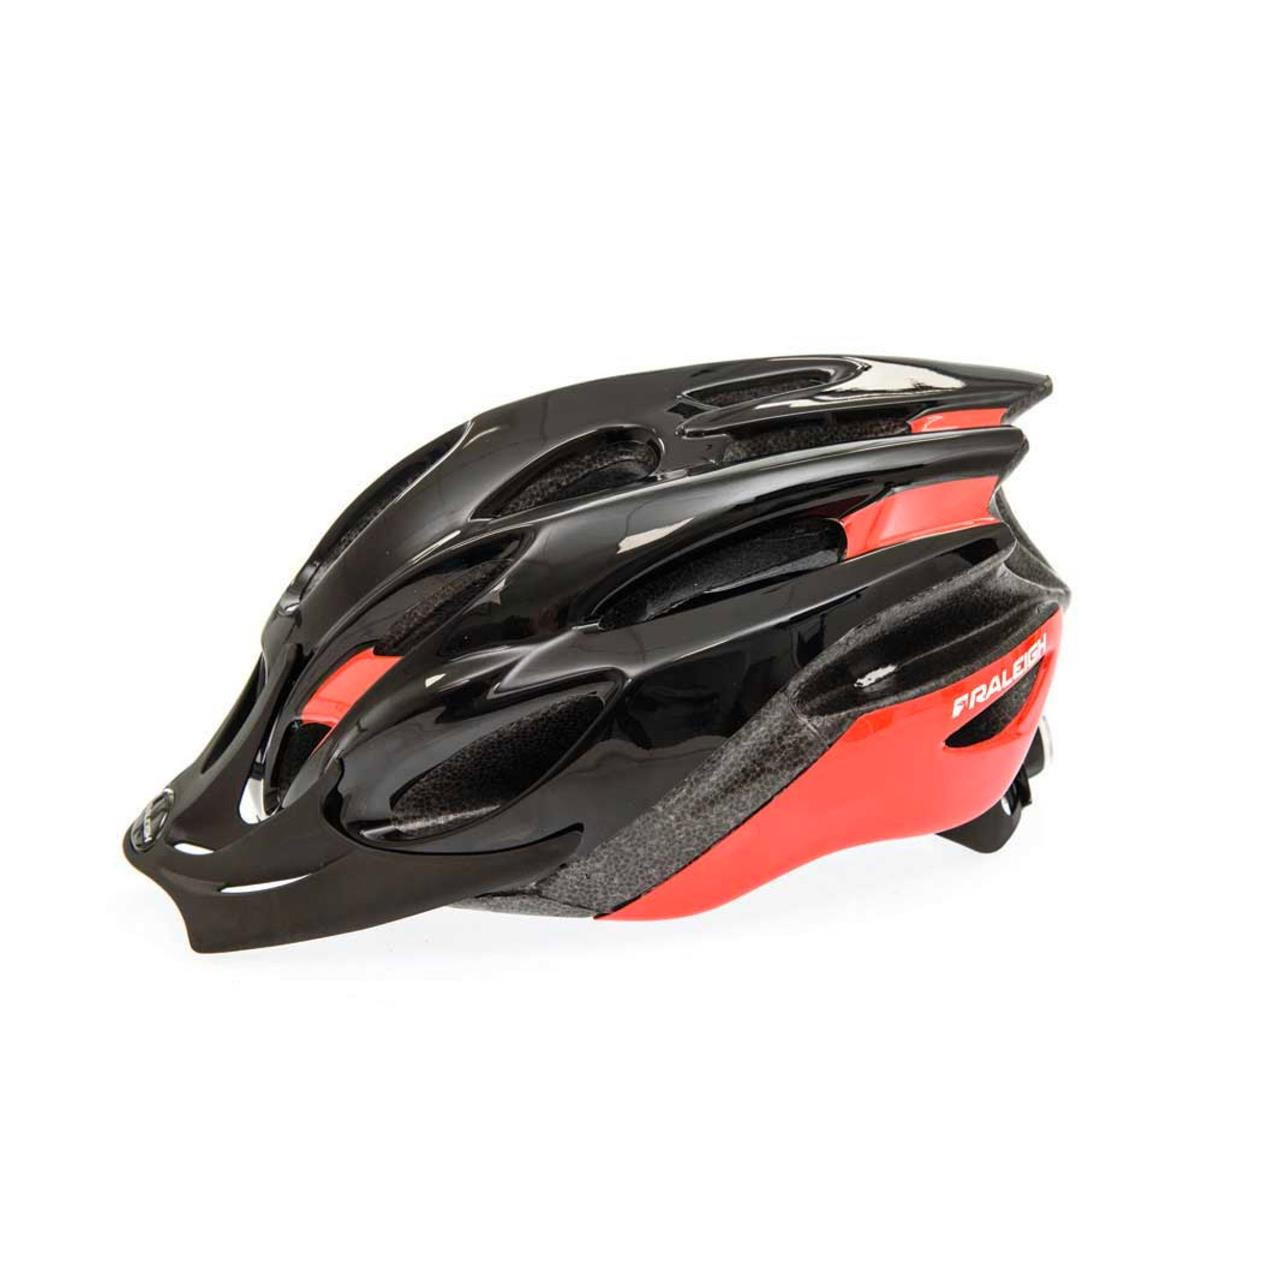 Raleigh Mission Evo Helmet (Black and Red, 54-58cm)